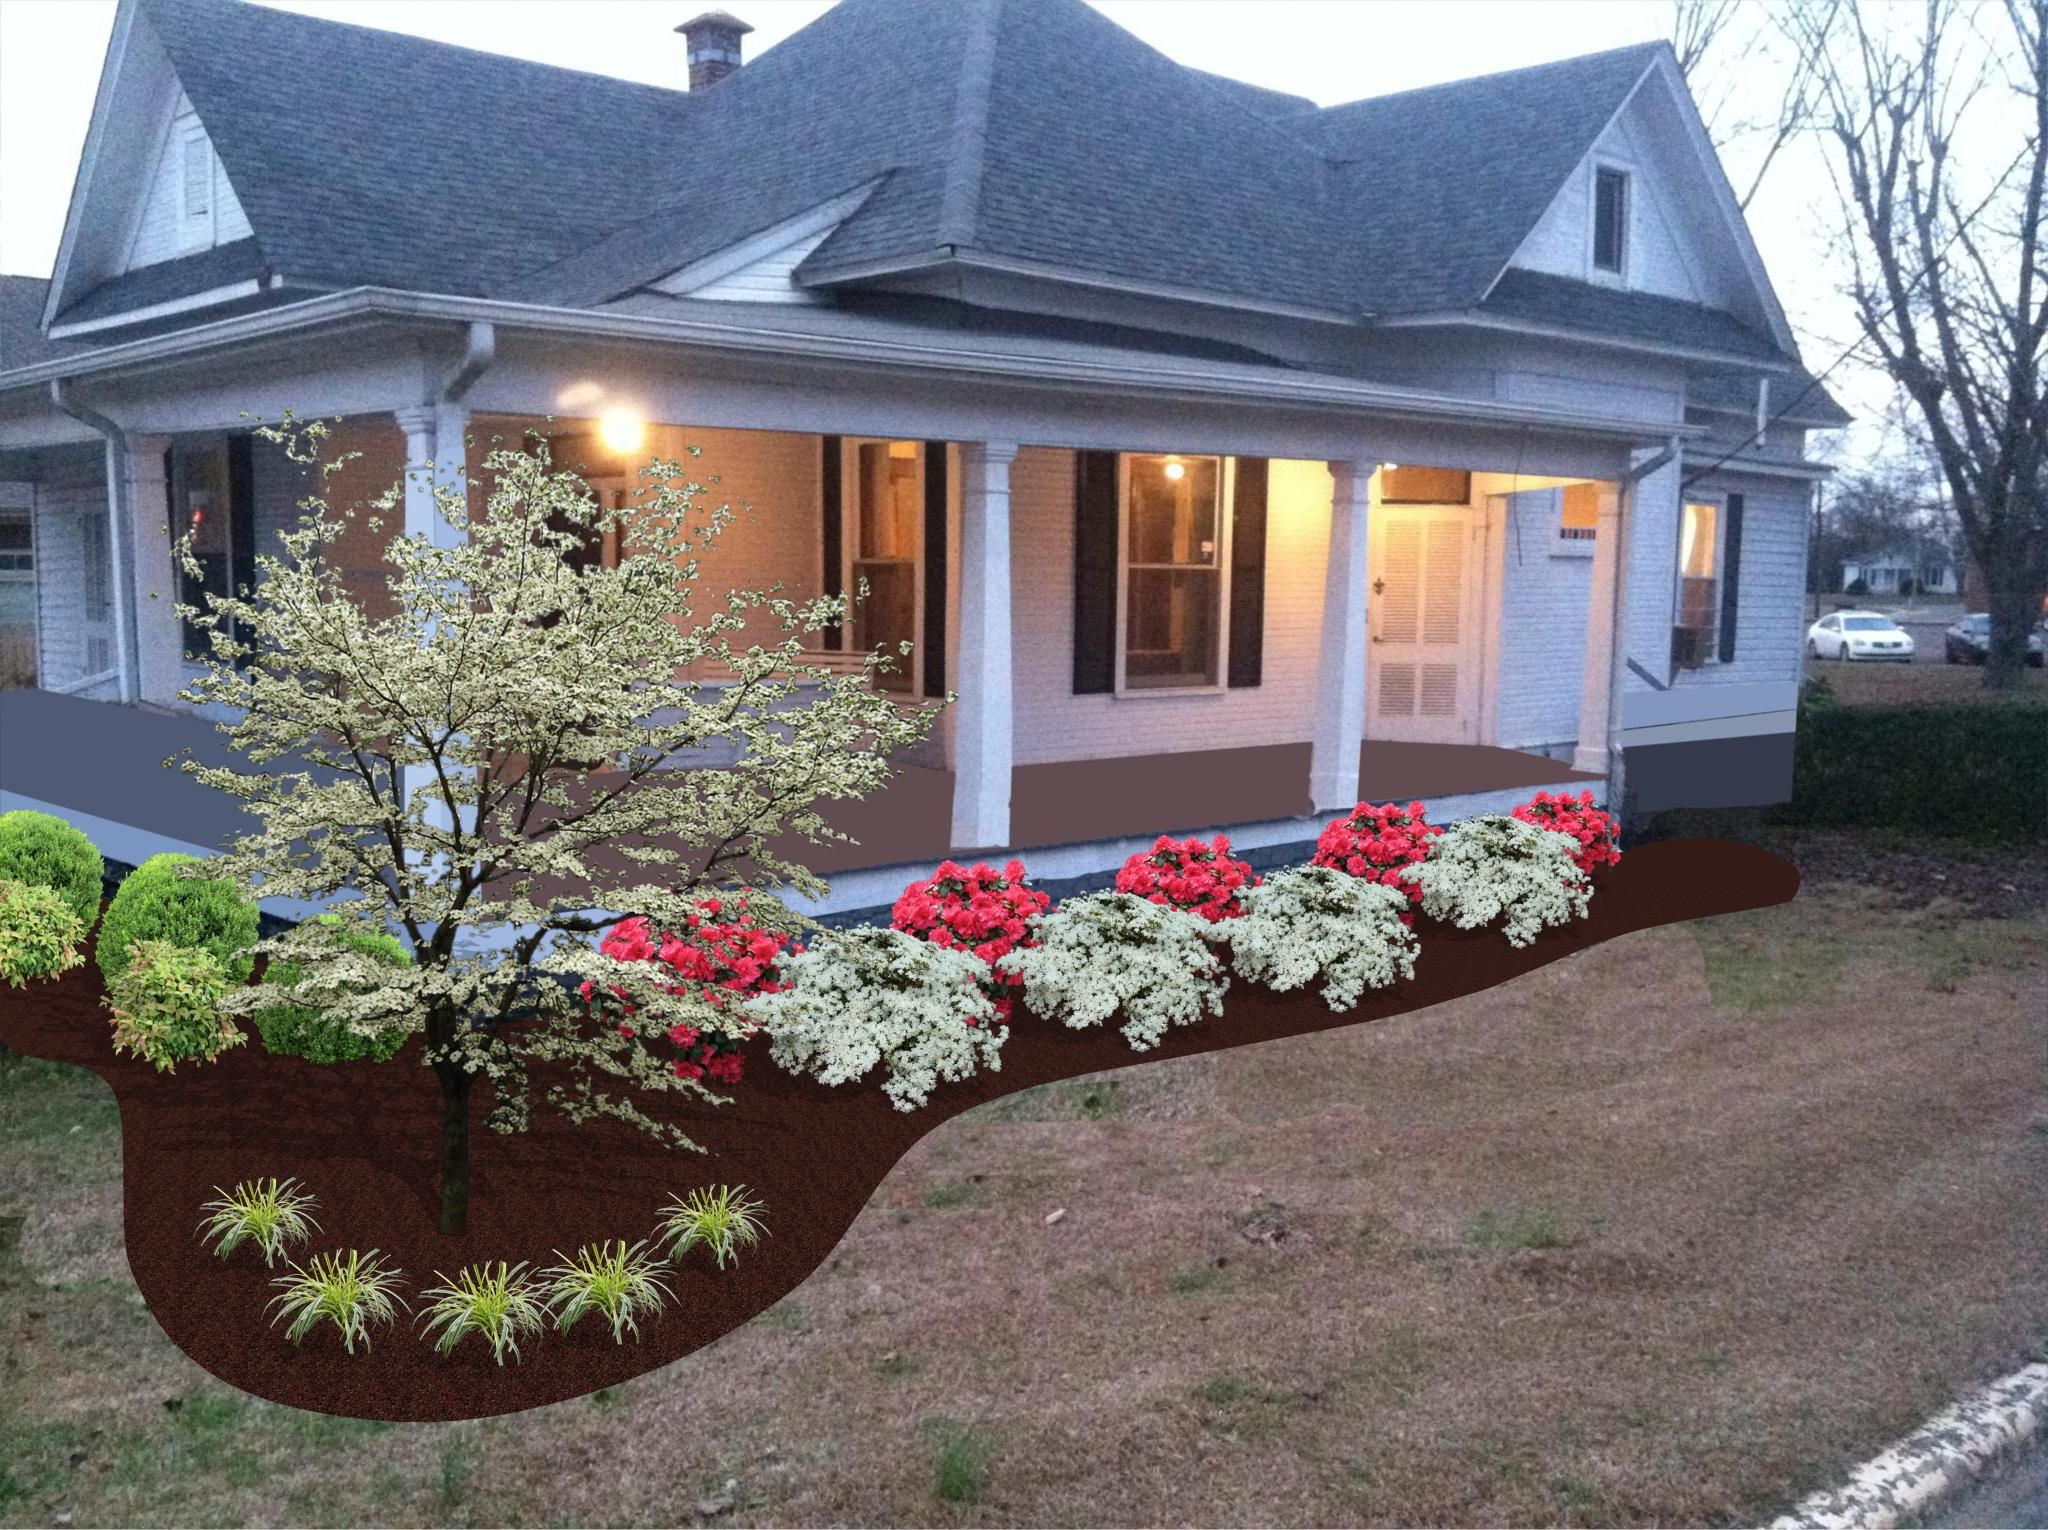 [southern landscaping ideas] - 28 images - landscaping ...